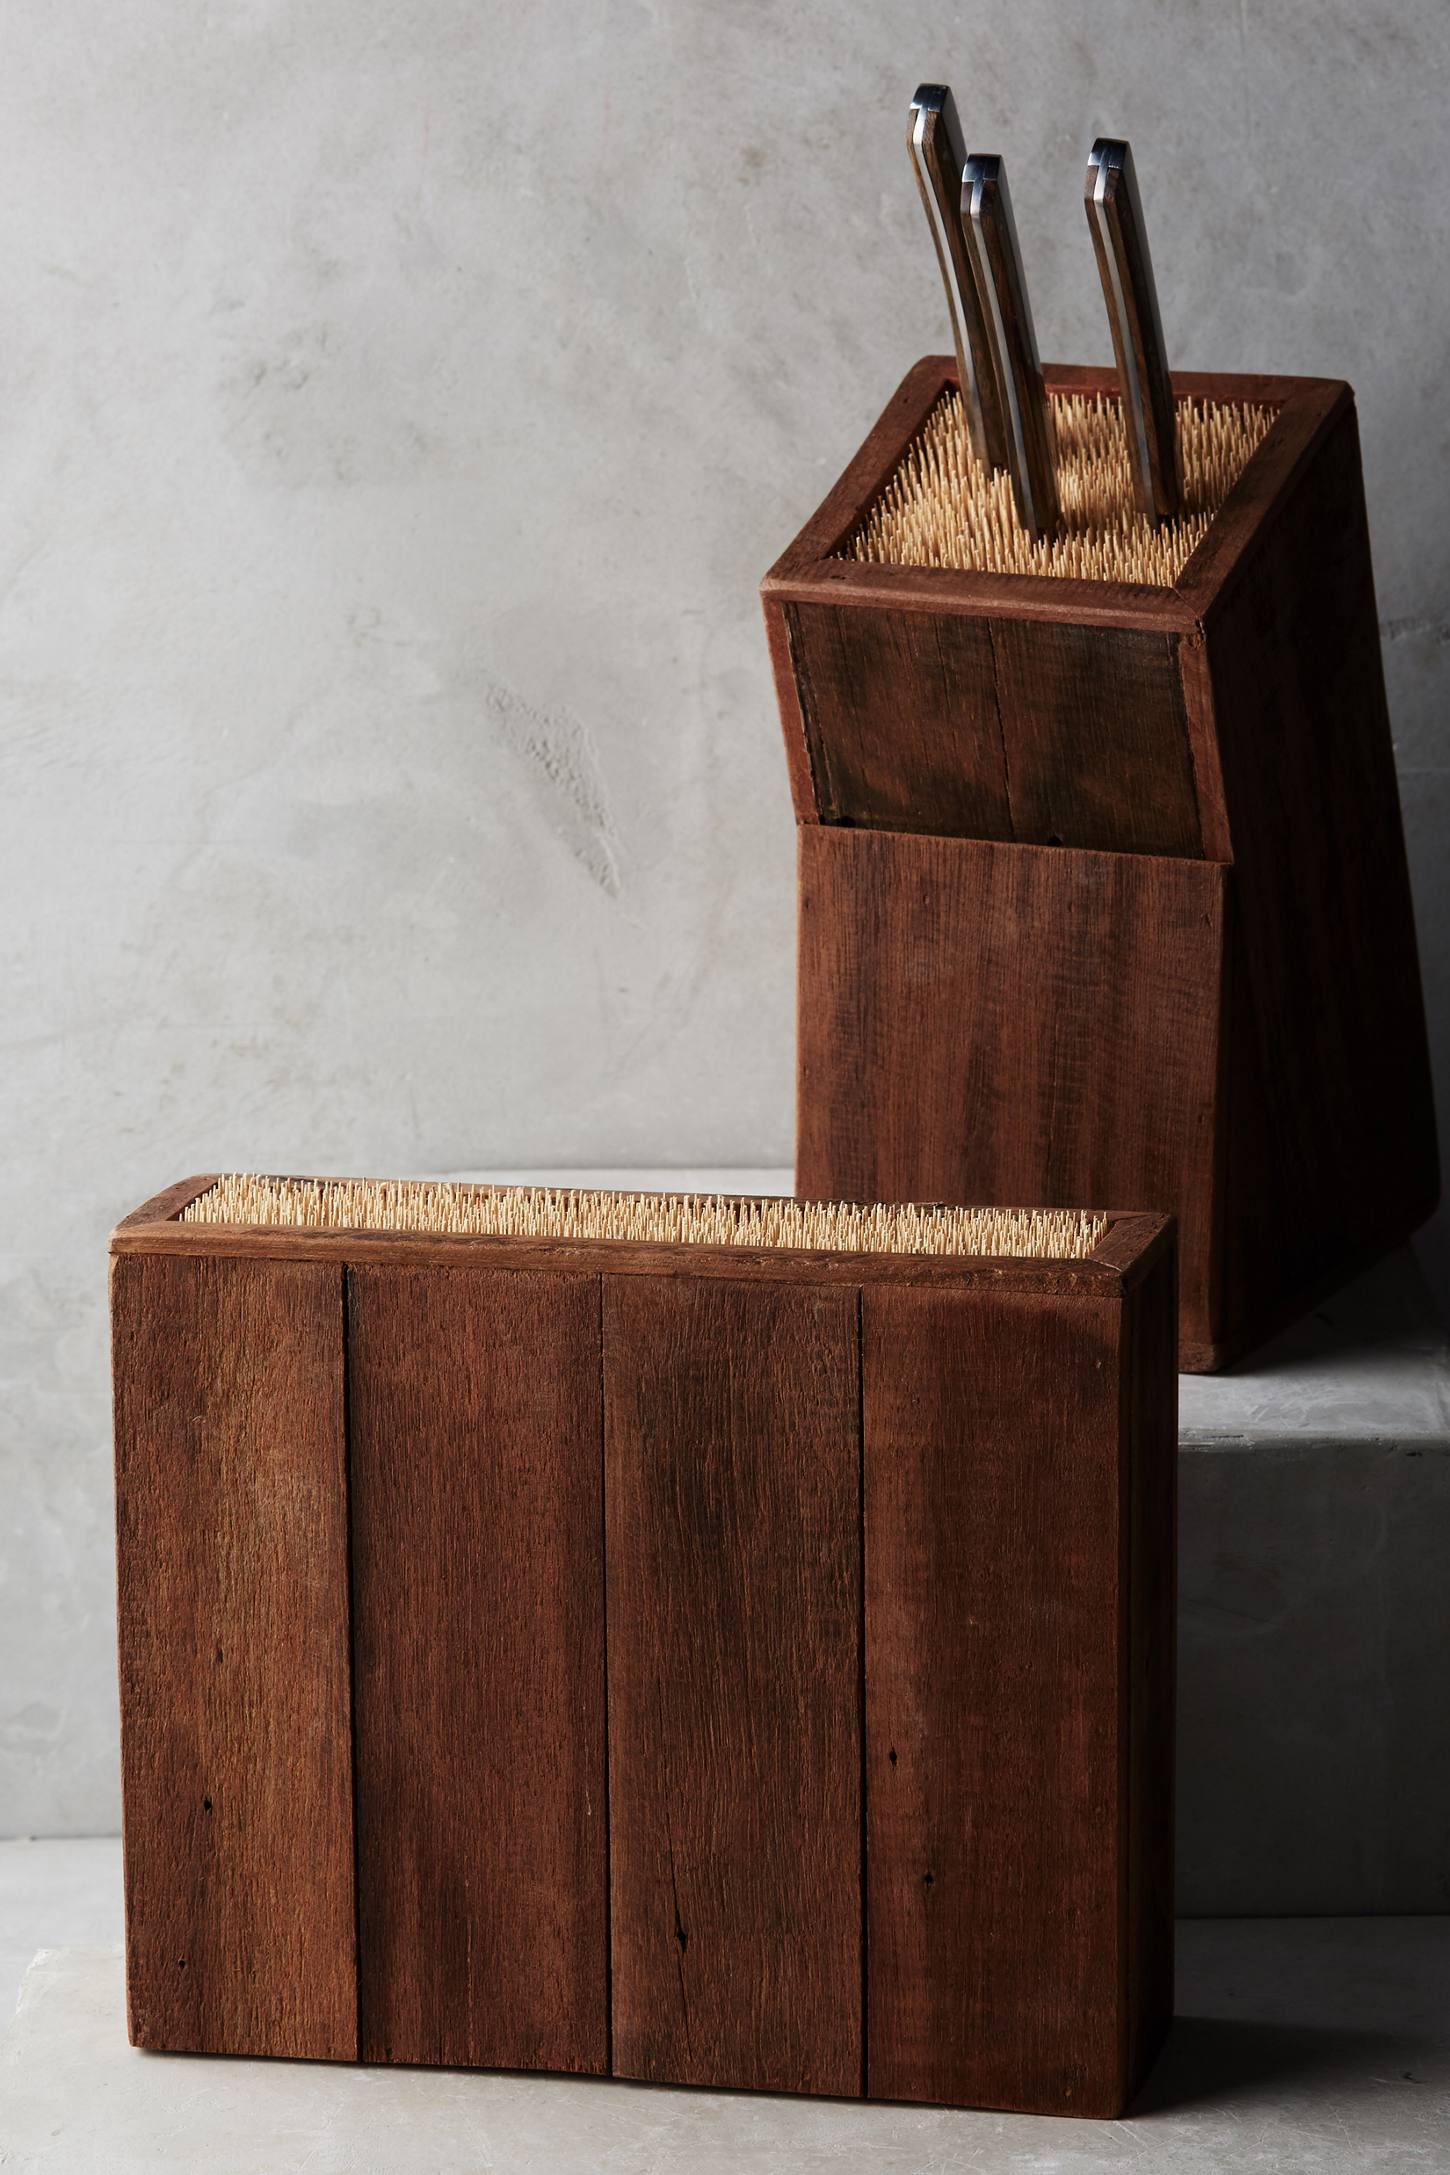 Slide View: 5: Bamboo Knife Block